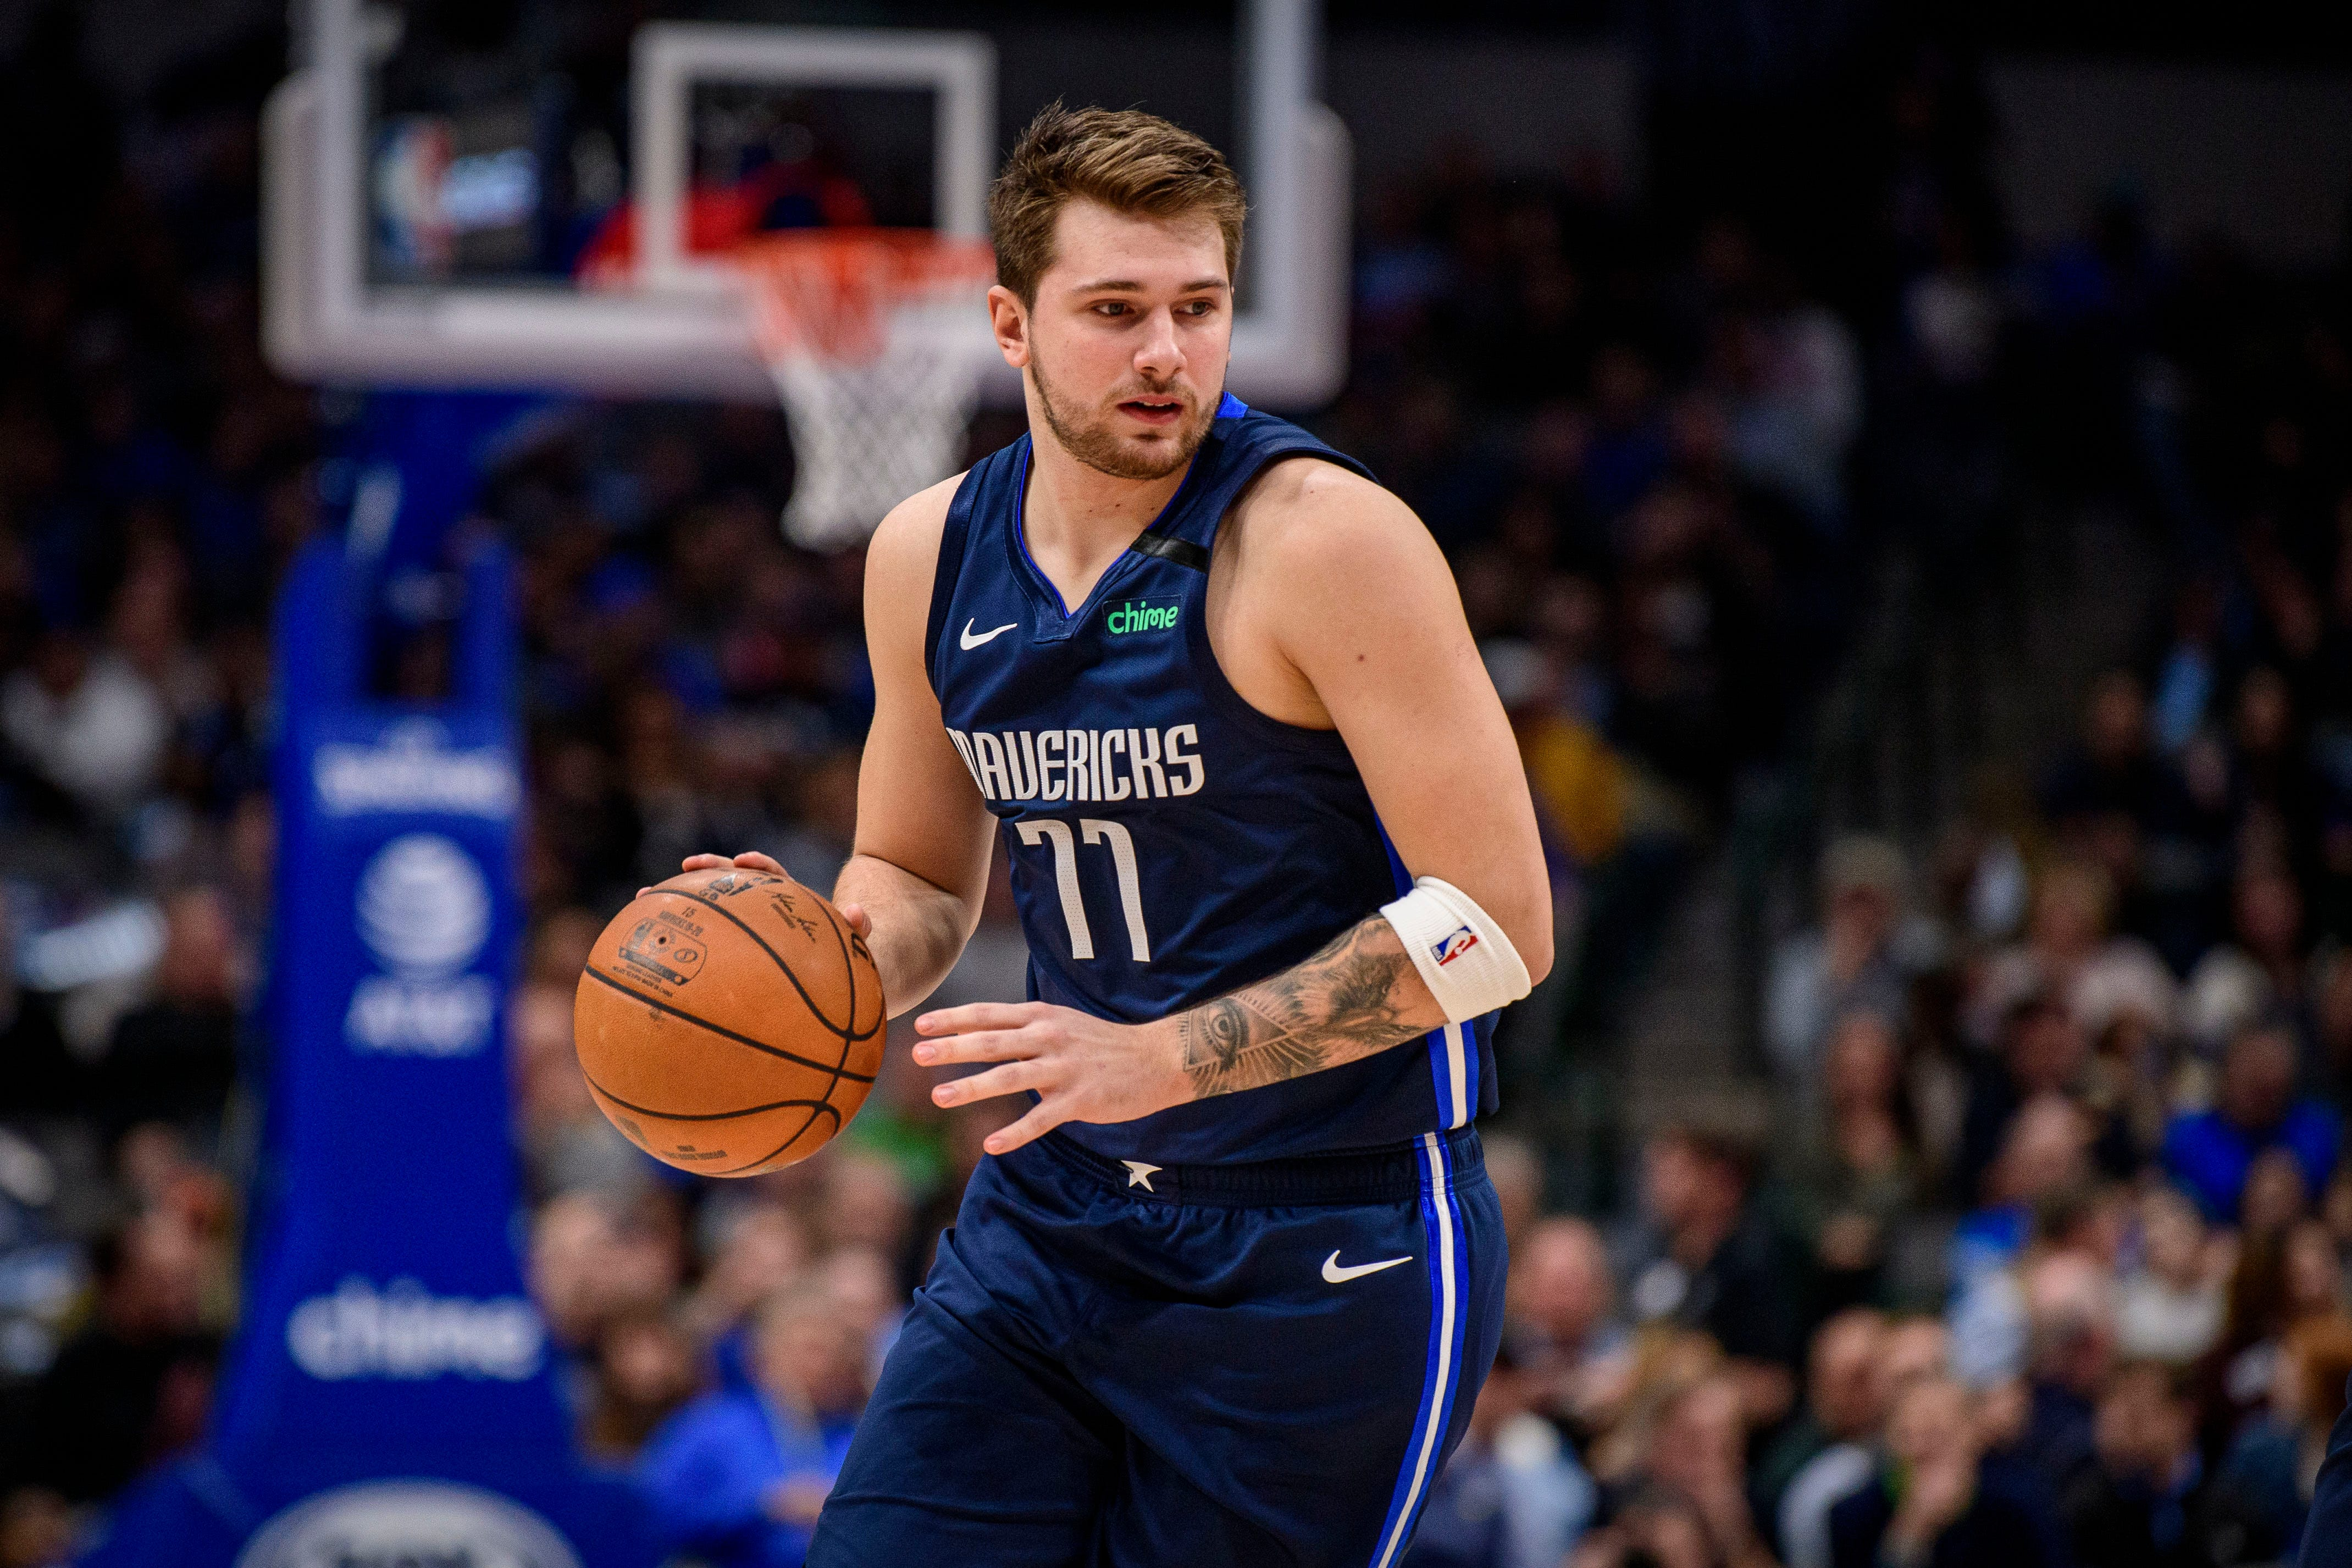 Opinion: Dallas Mavericks' Luka Doncic will be even better in Year 3 with upgrades on roster around him